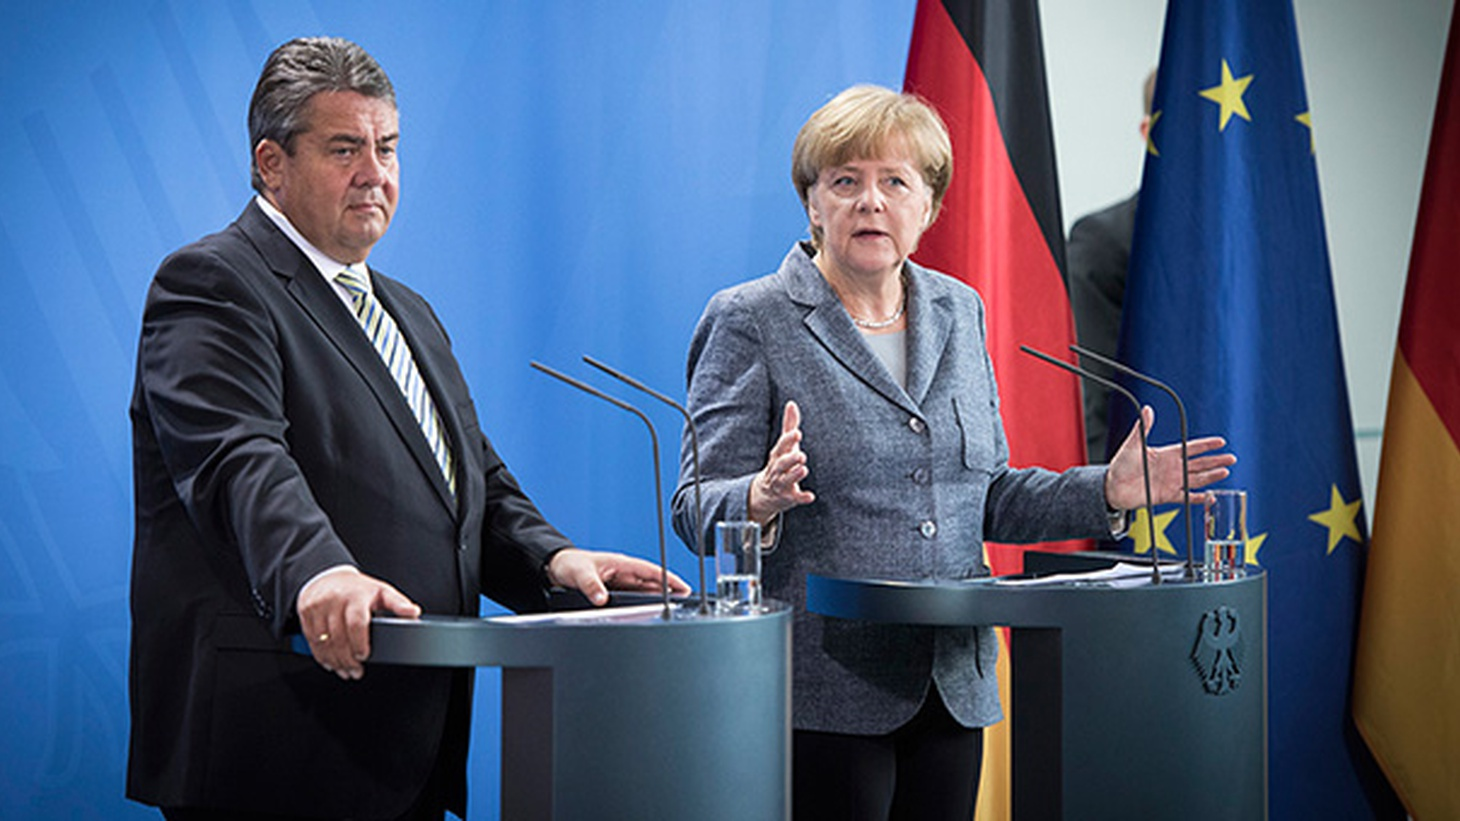 While other countries in Europe are building walls and setting up police lines, Germany is urging widespread acceptance of refugees. German Chancellor Angela  Merkel has told Germans  to brace for an influx of refugees — promising to accept a half-million new people every year for the next five years.